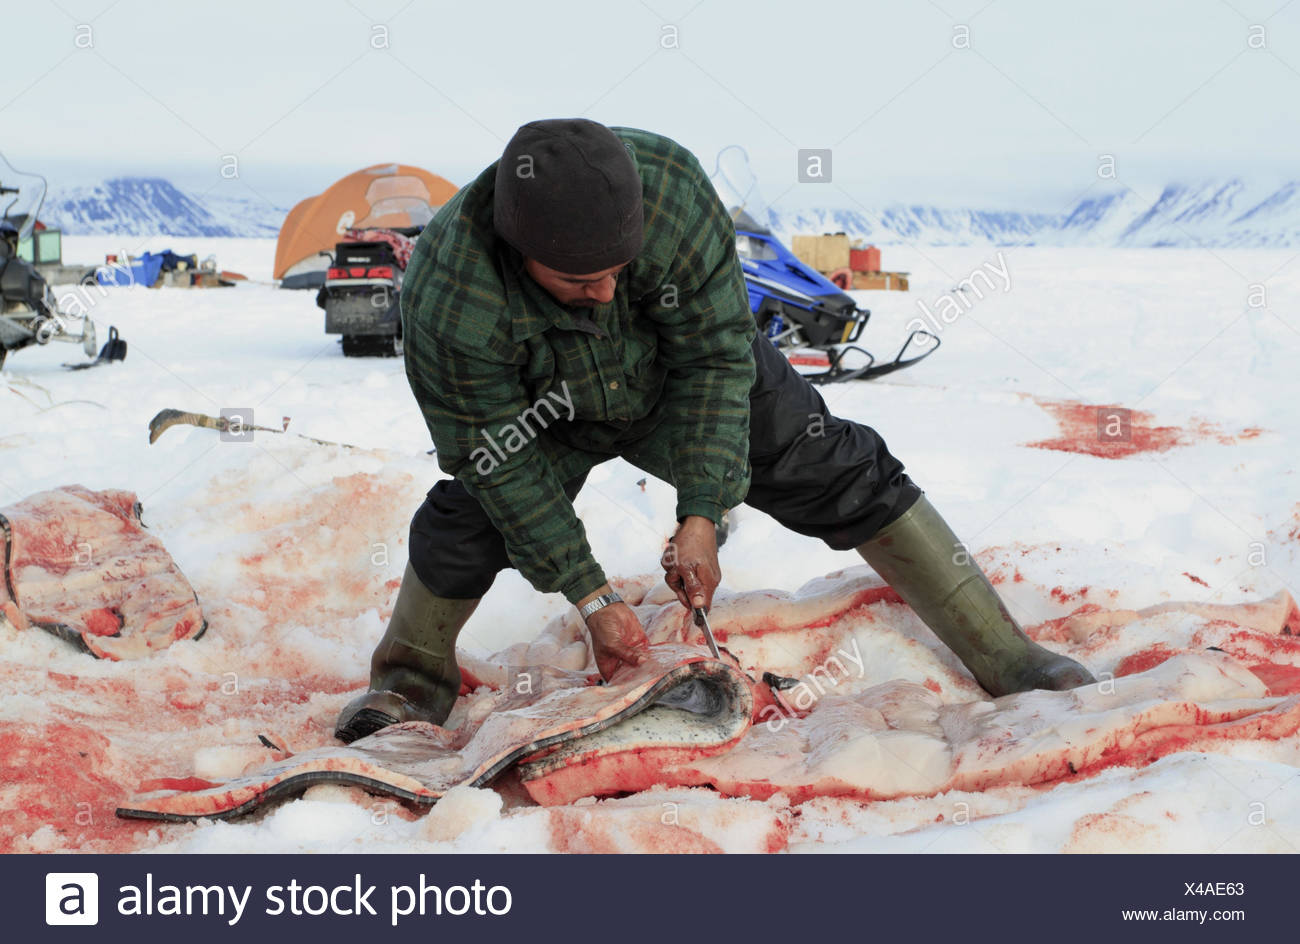 North America, Canada, Nordkanada, Nunavut, Baffin Iceland, Eclipse sound, Pond Inlet, Inuit, whale hunt, shot narwhal, - Stock Image